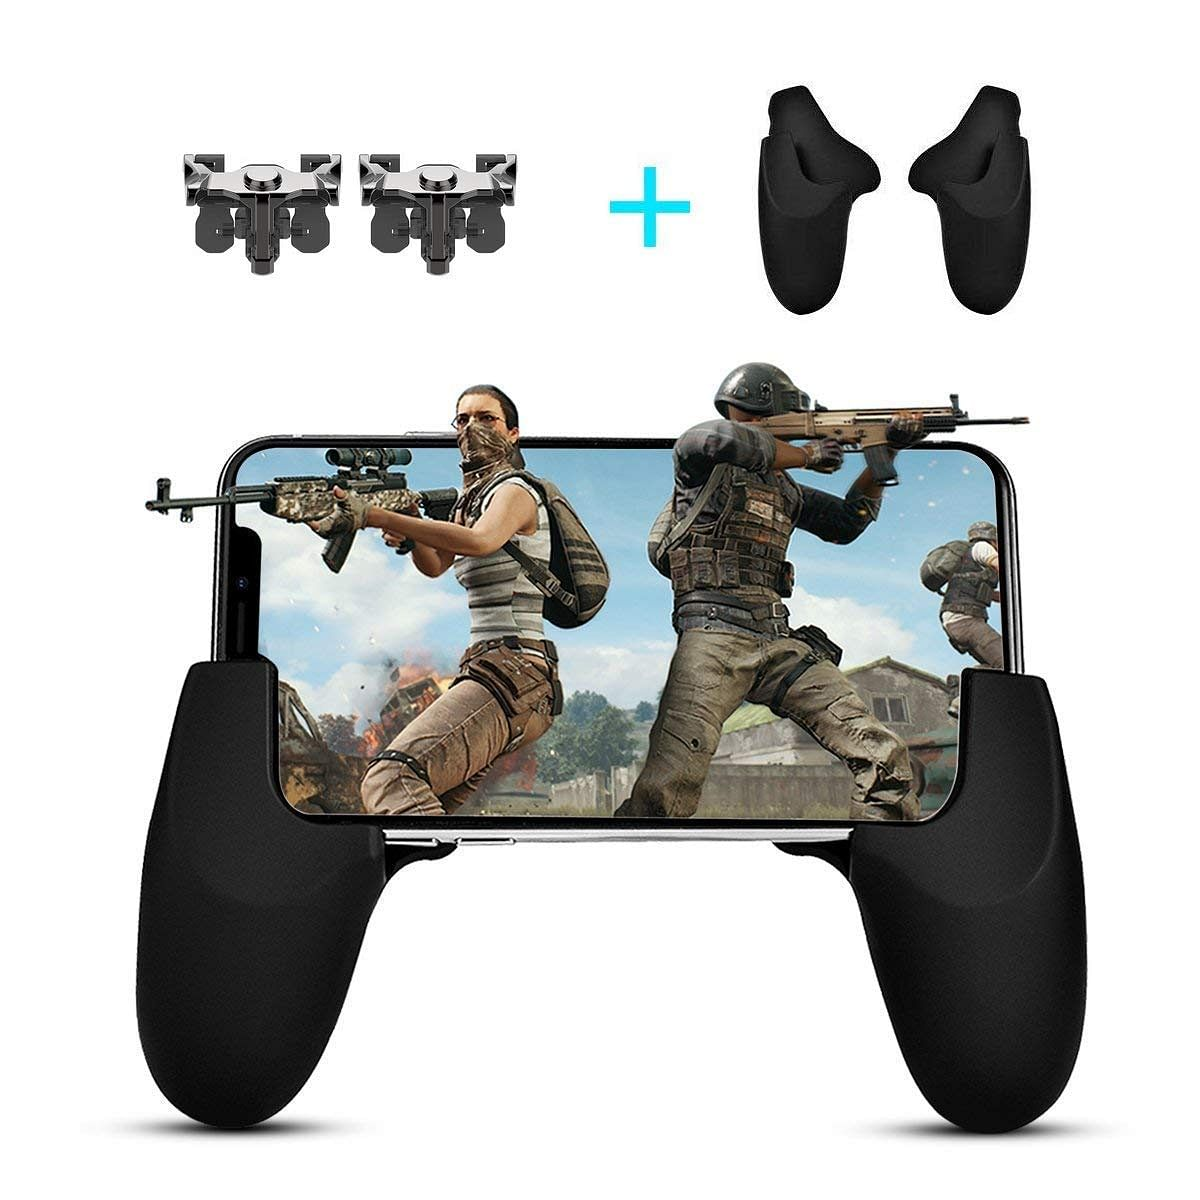 Mobile Controller Handle & Trigger.